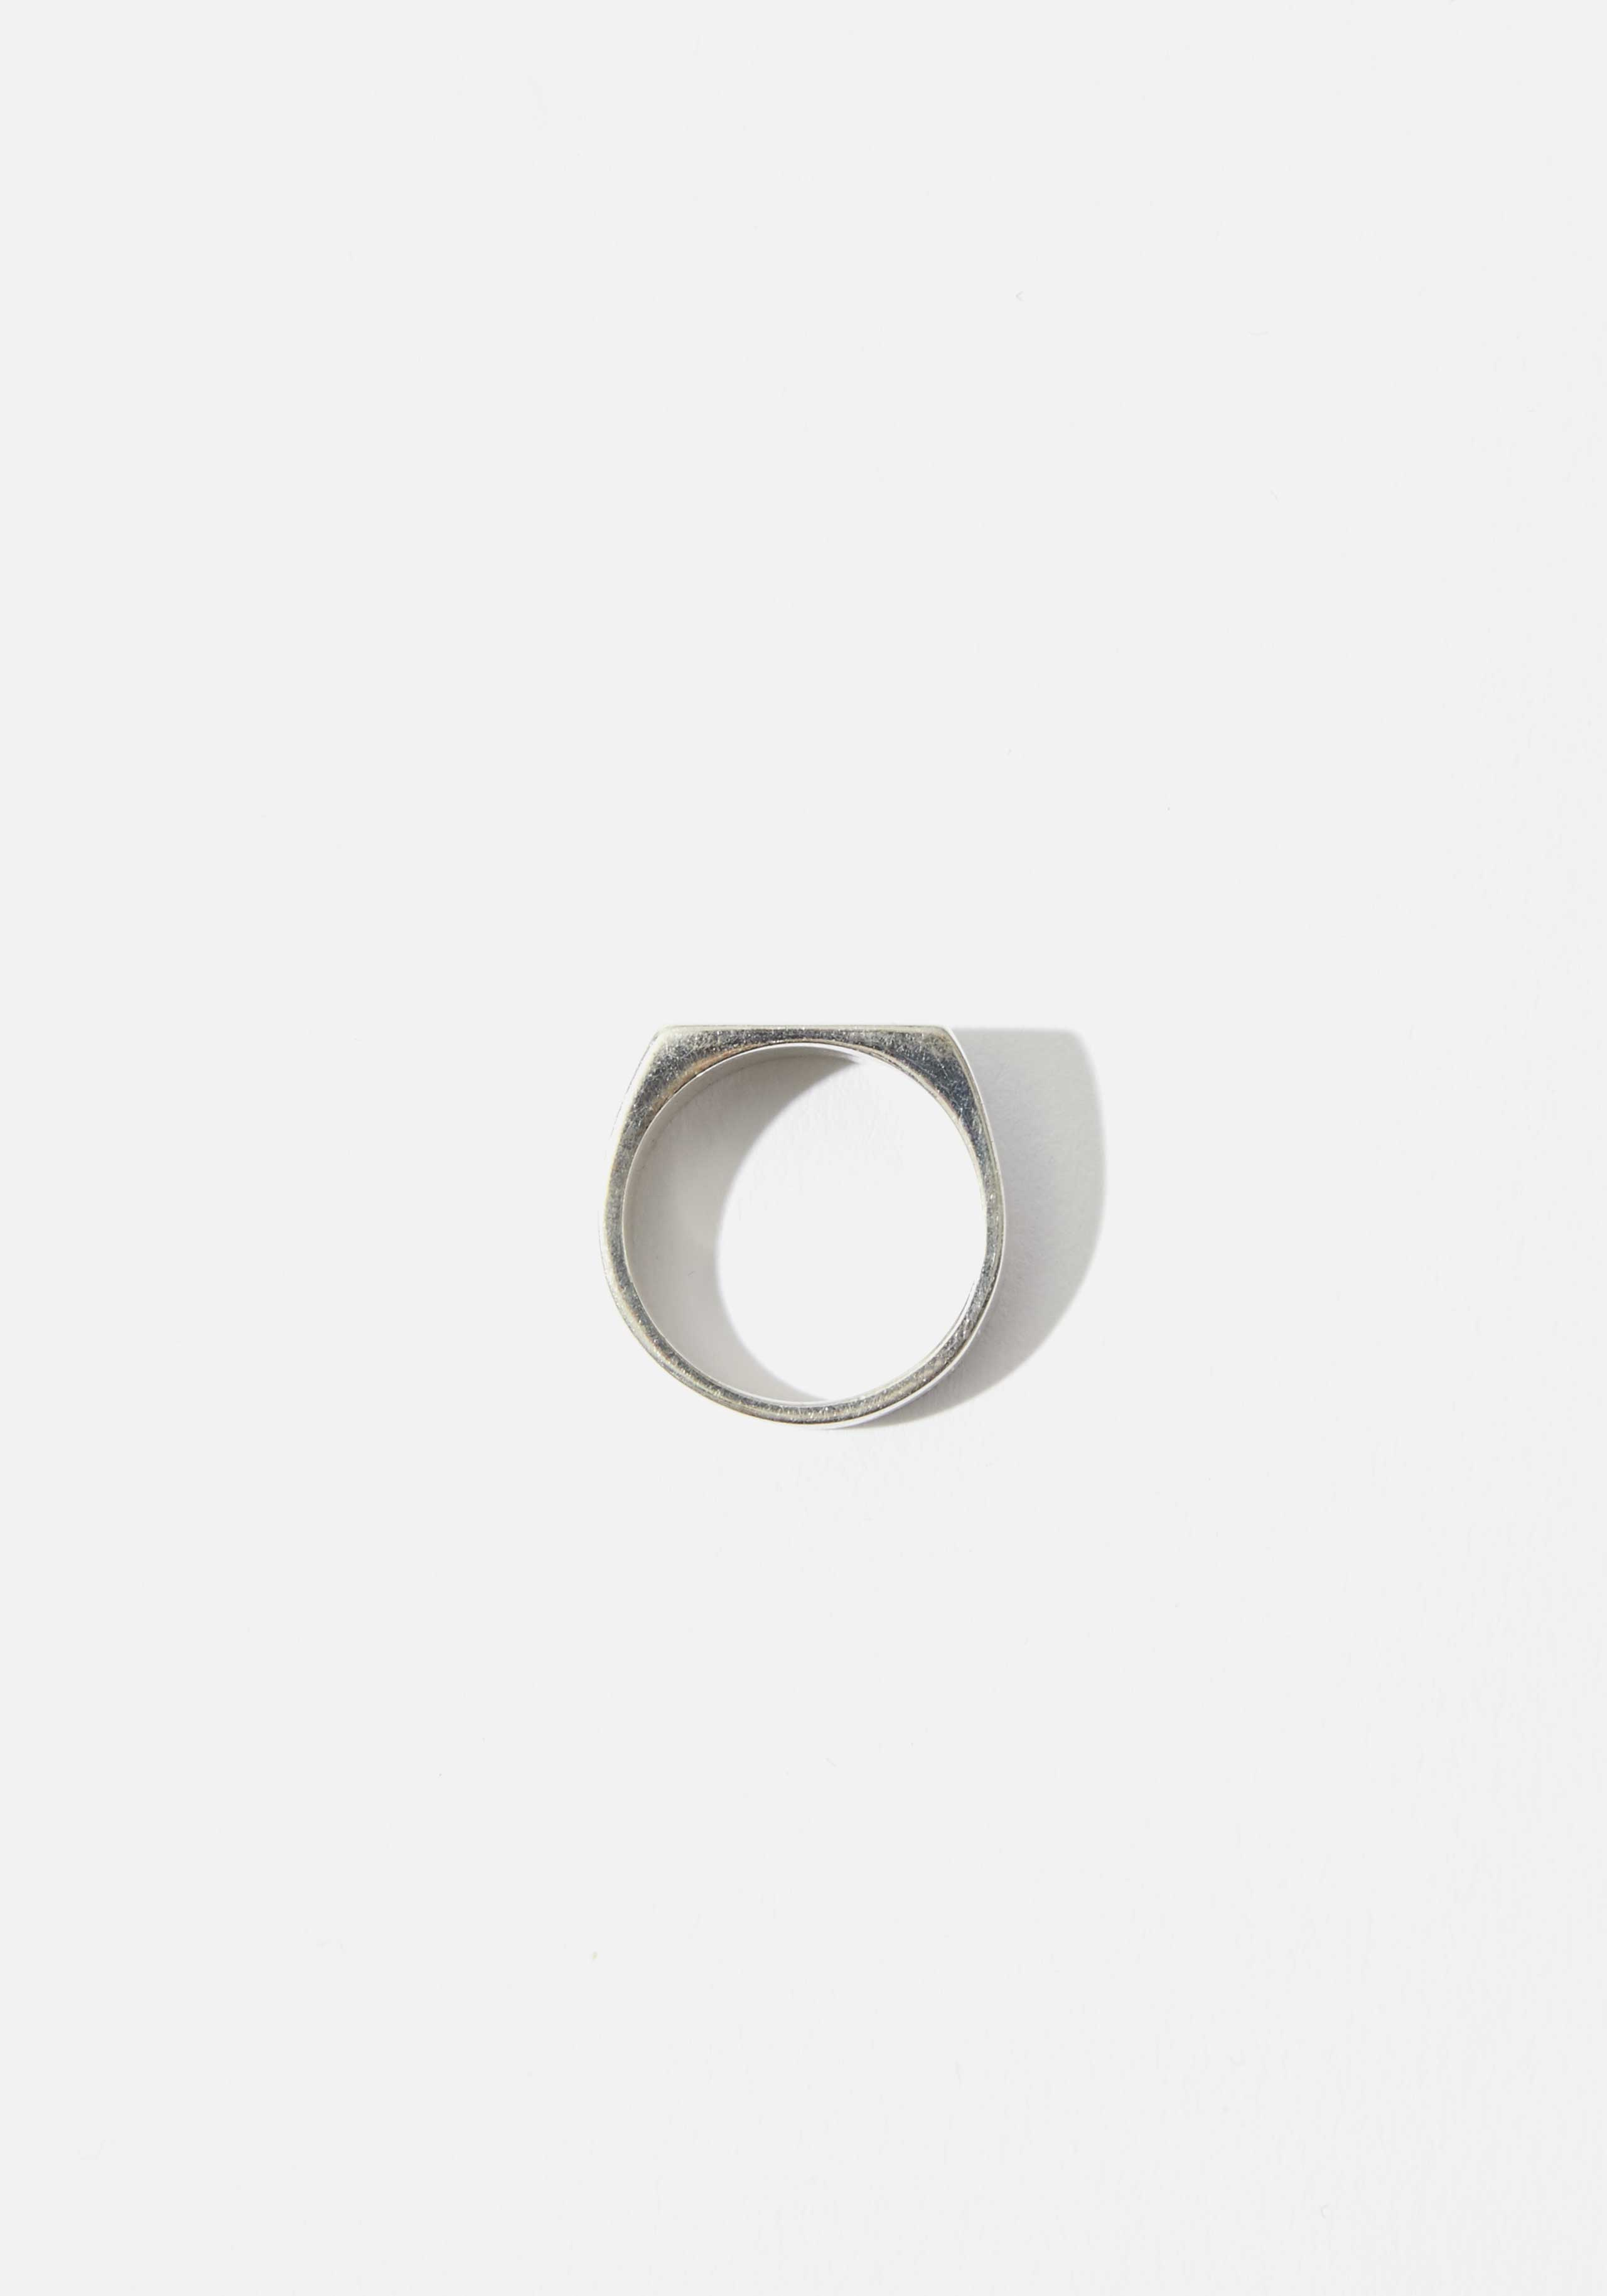 mki mini block signet ring 4